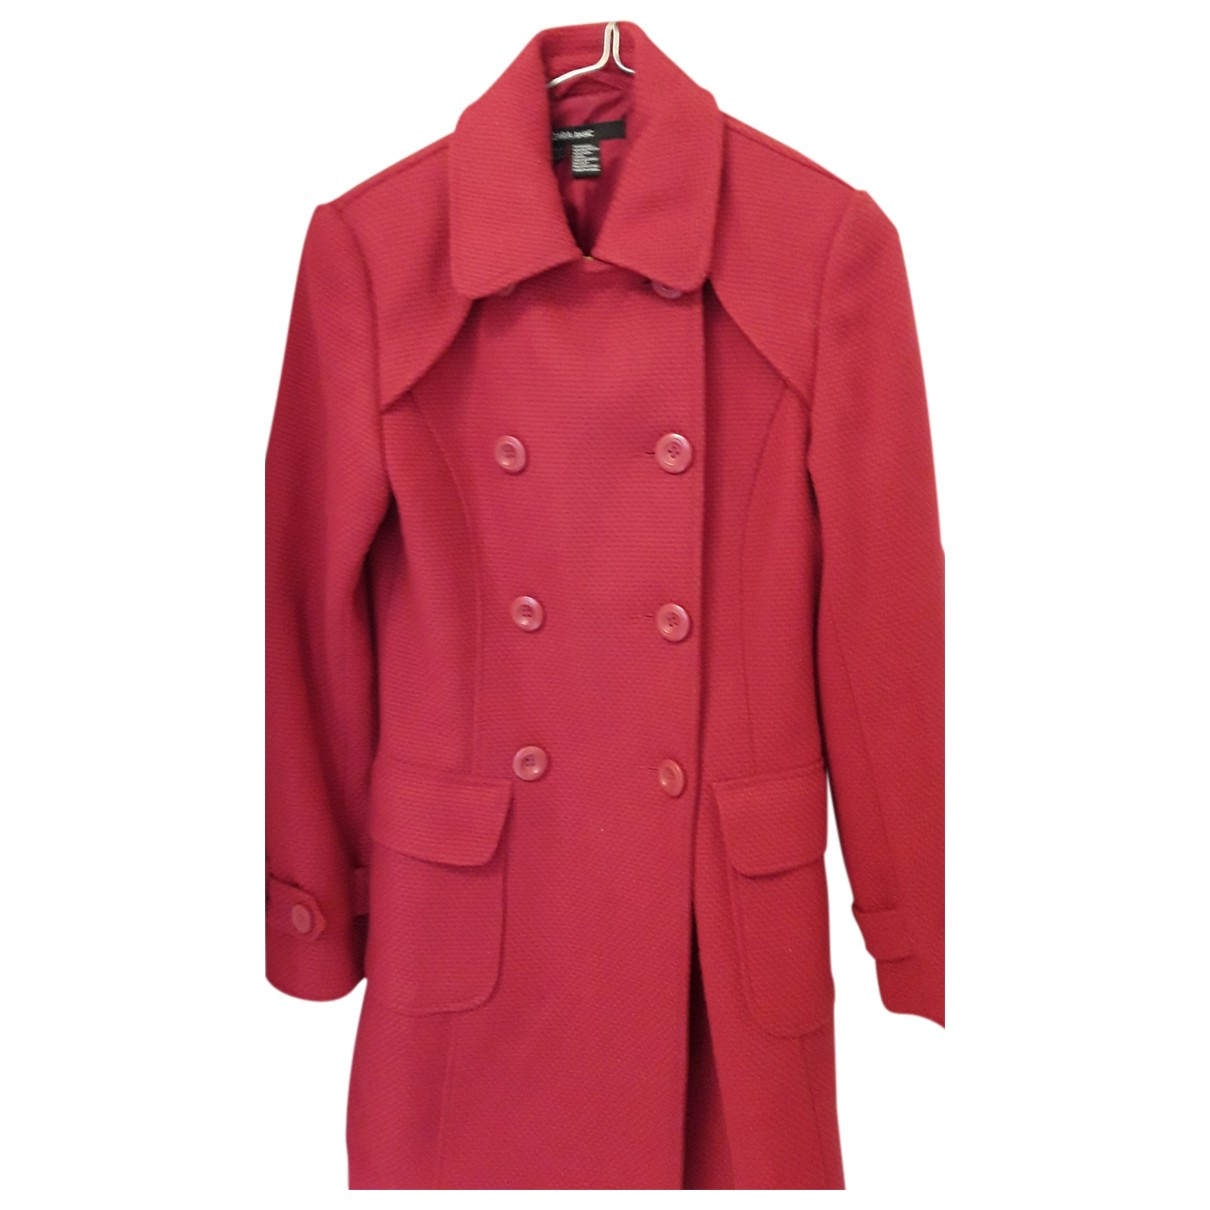 Autre Marque N Red Wool coat for Women 34 FR